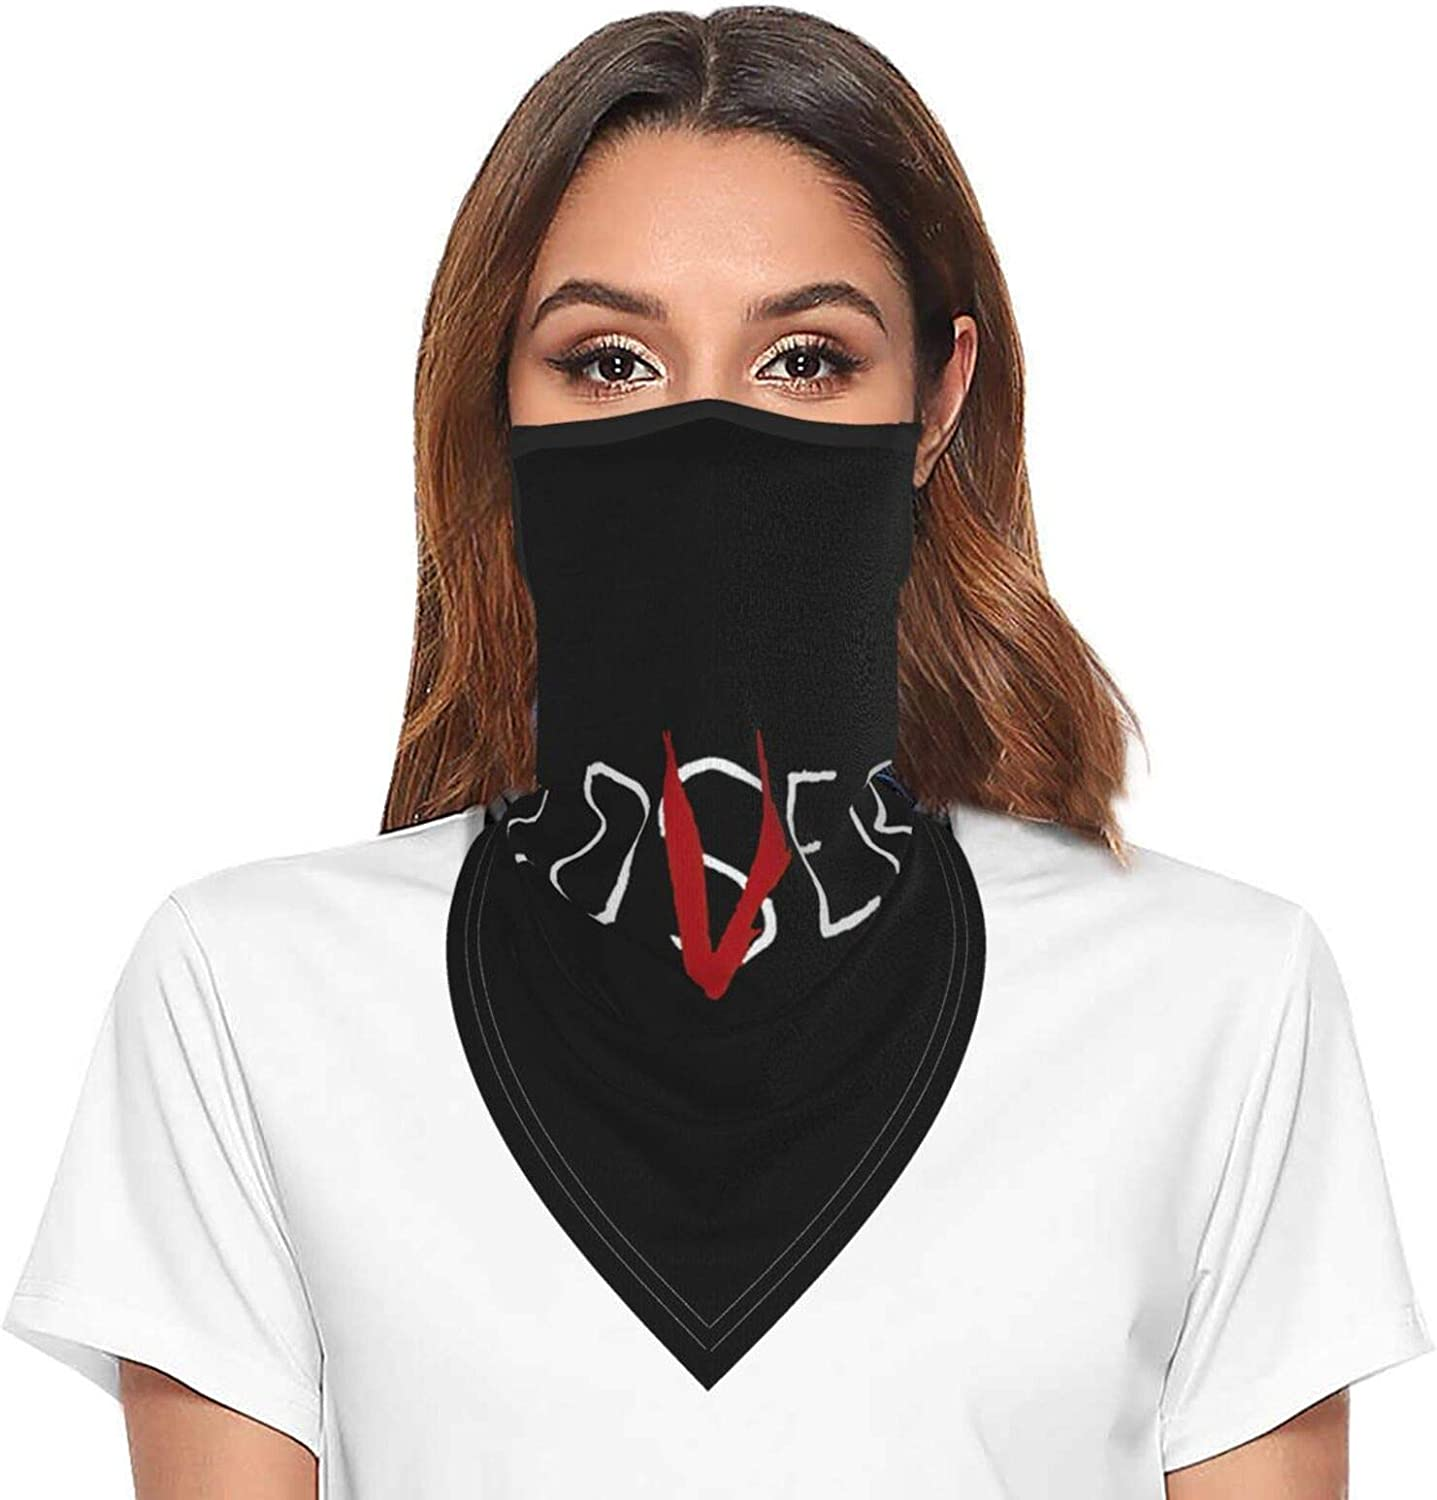 Loser Or Lover Neck Gaiter Face Mask With Ear Loops Outdoor Breathable Scarf For Men Women